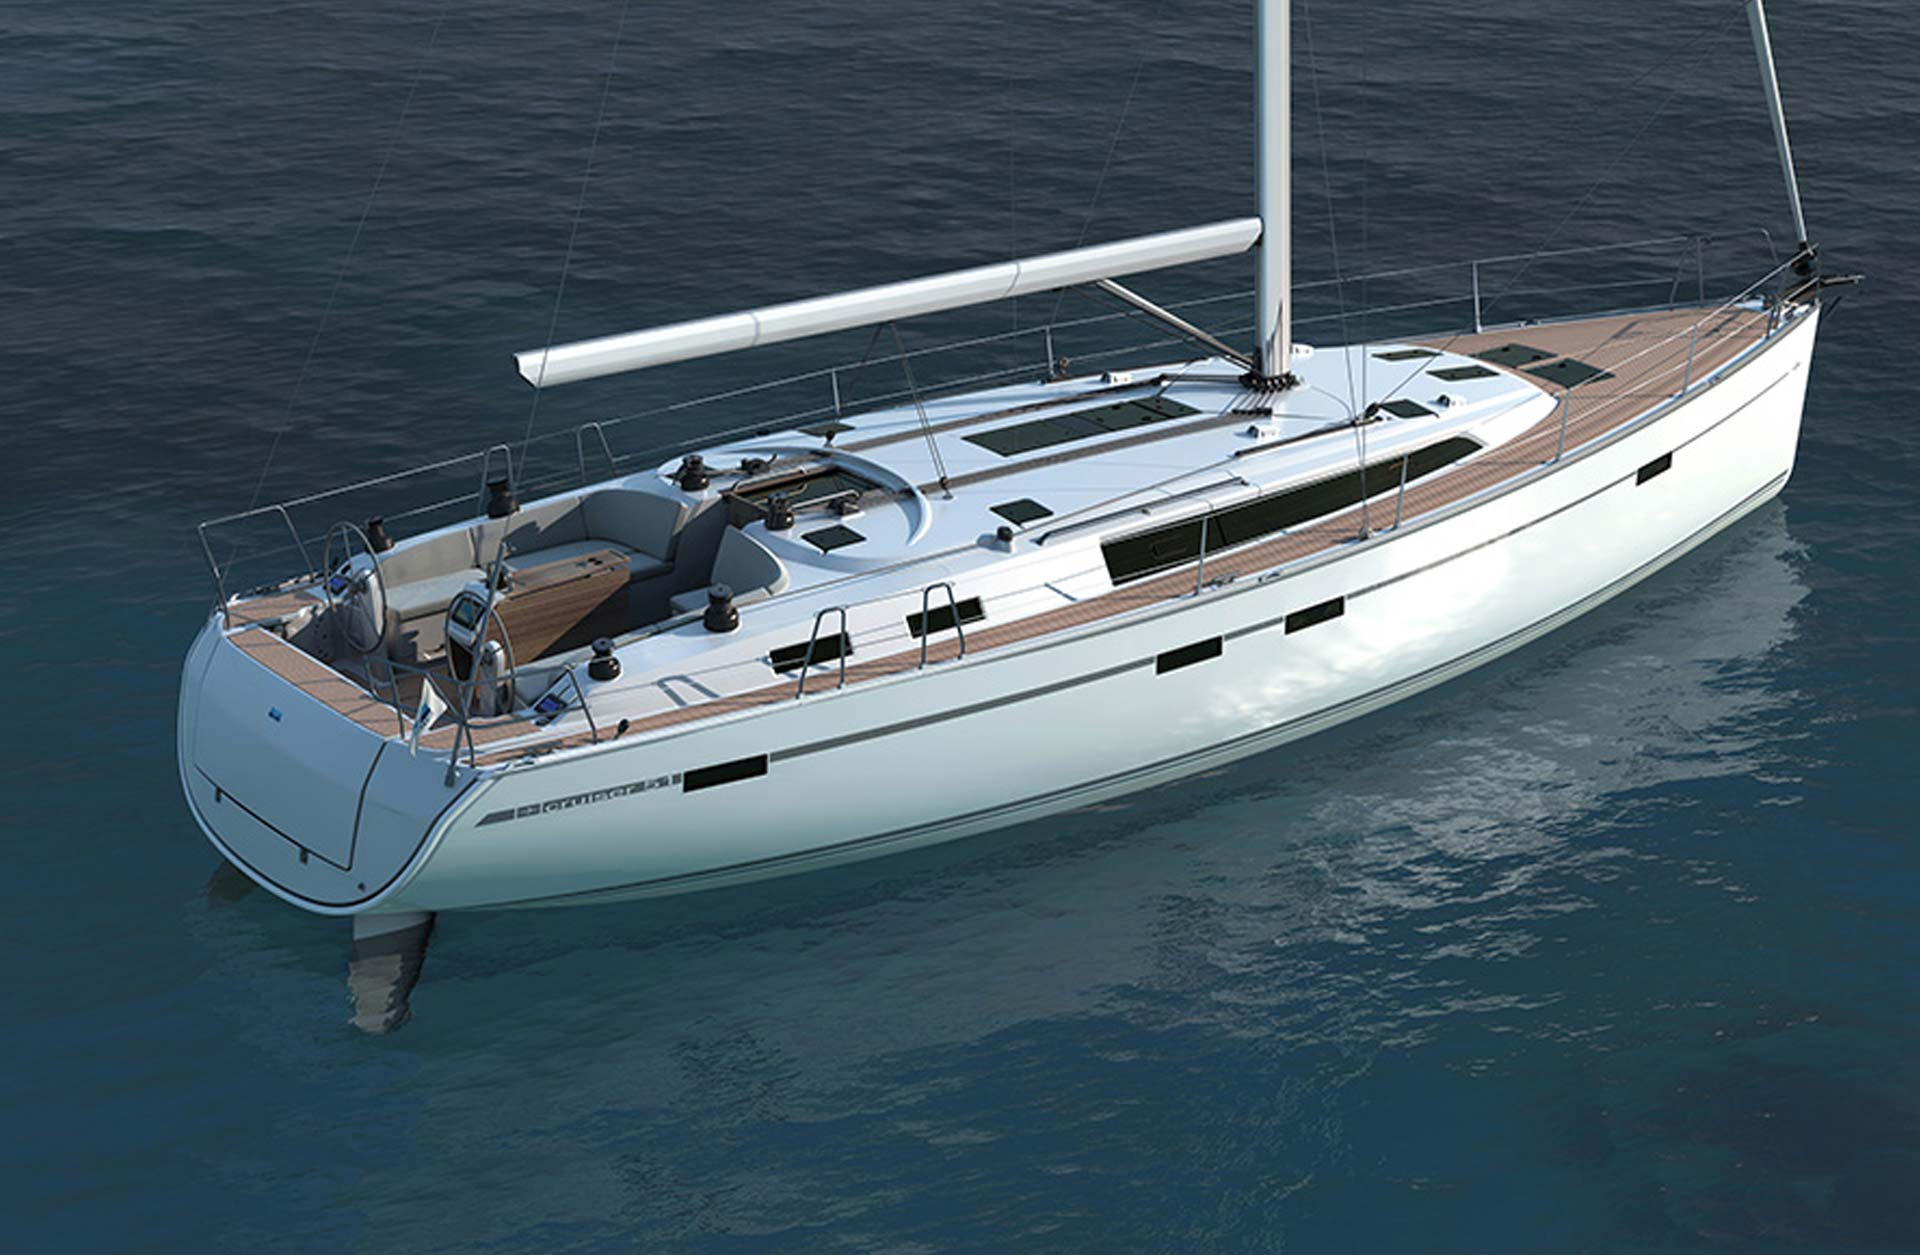 Bavaria 51 Cruiser Boats for Sale - EXTERIOR